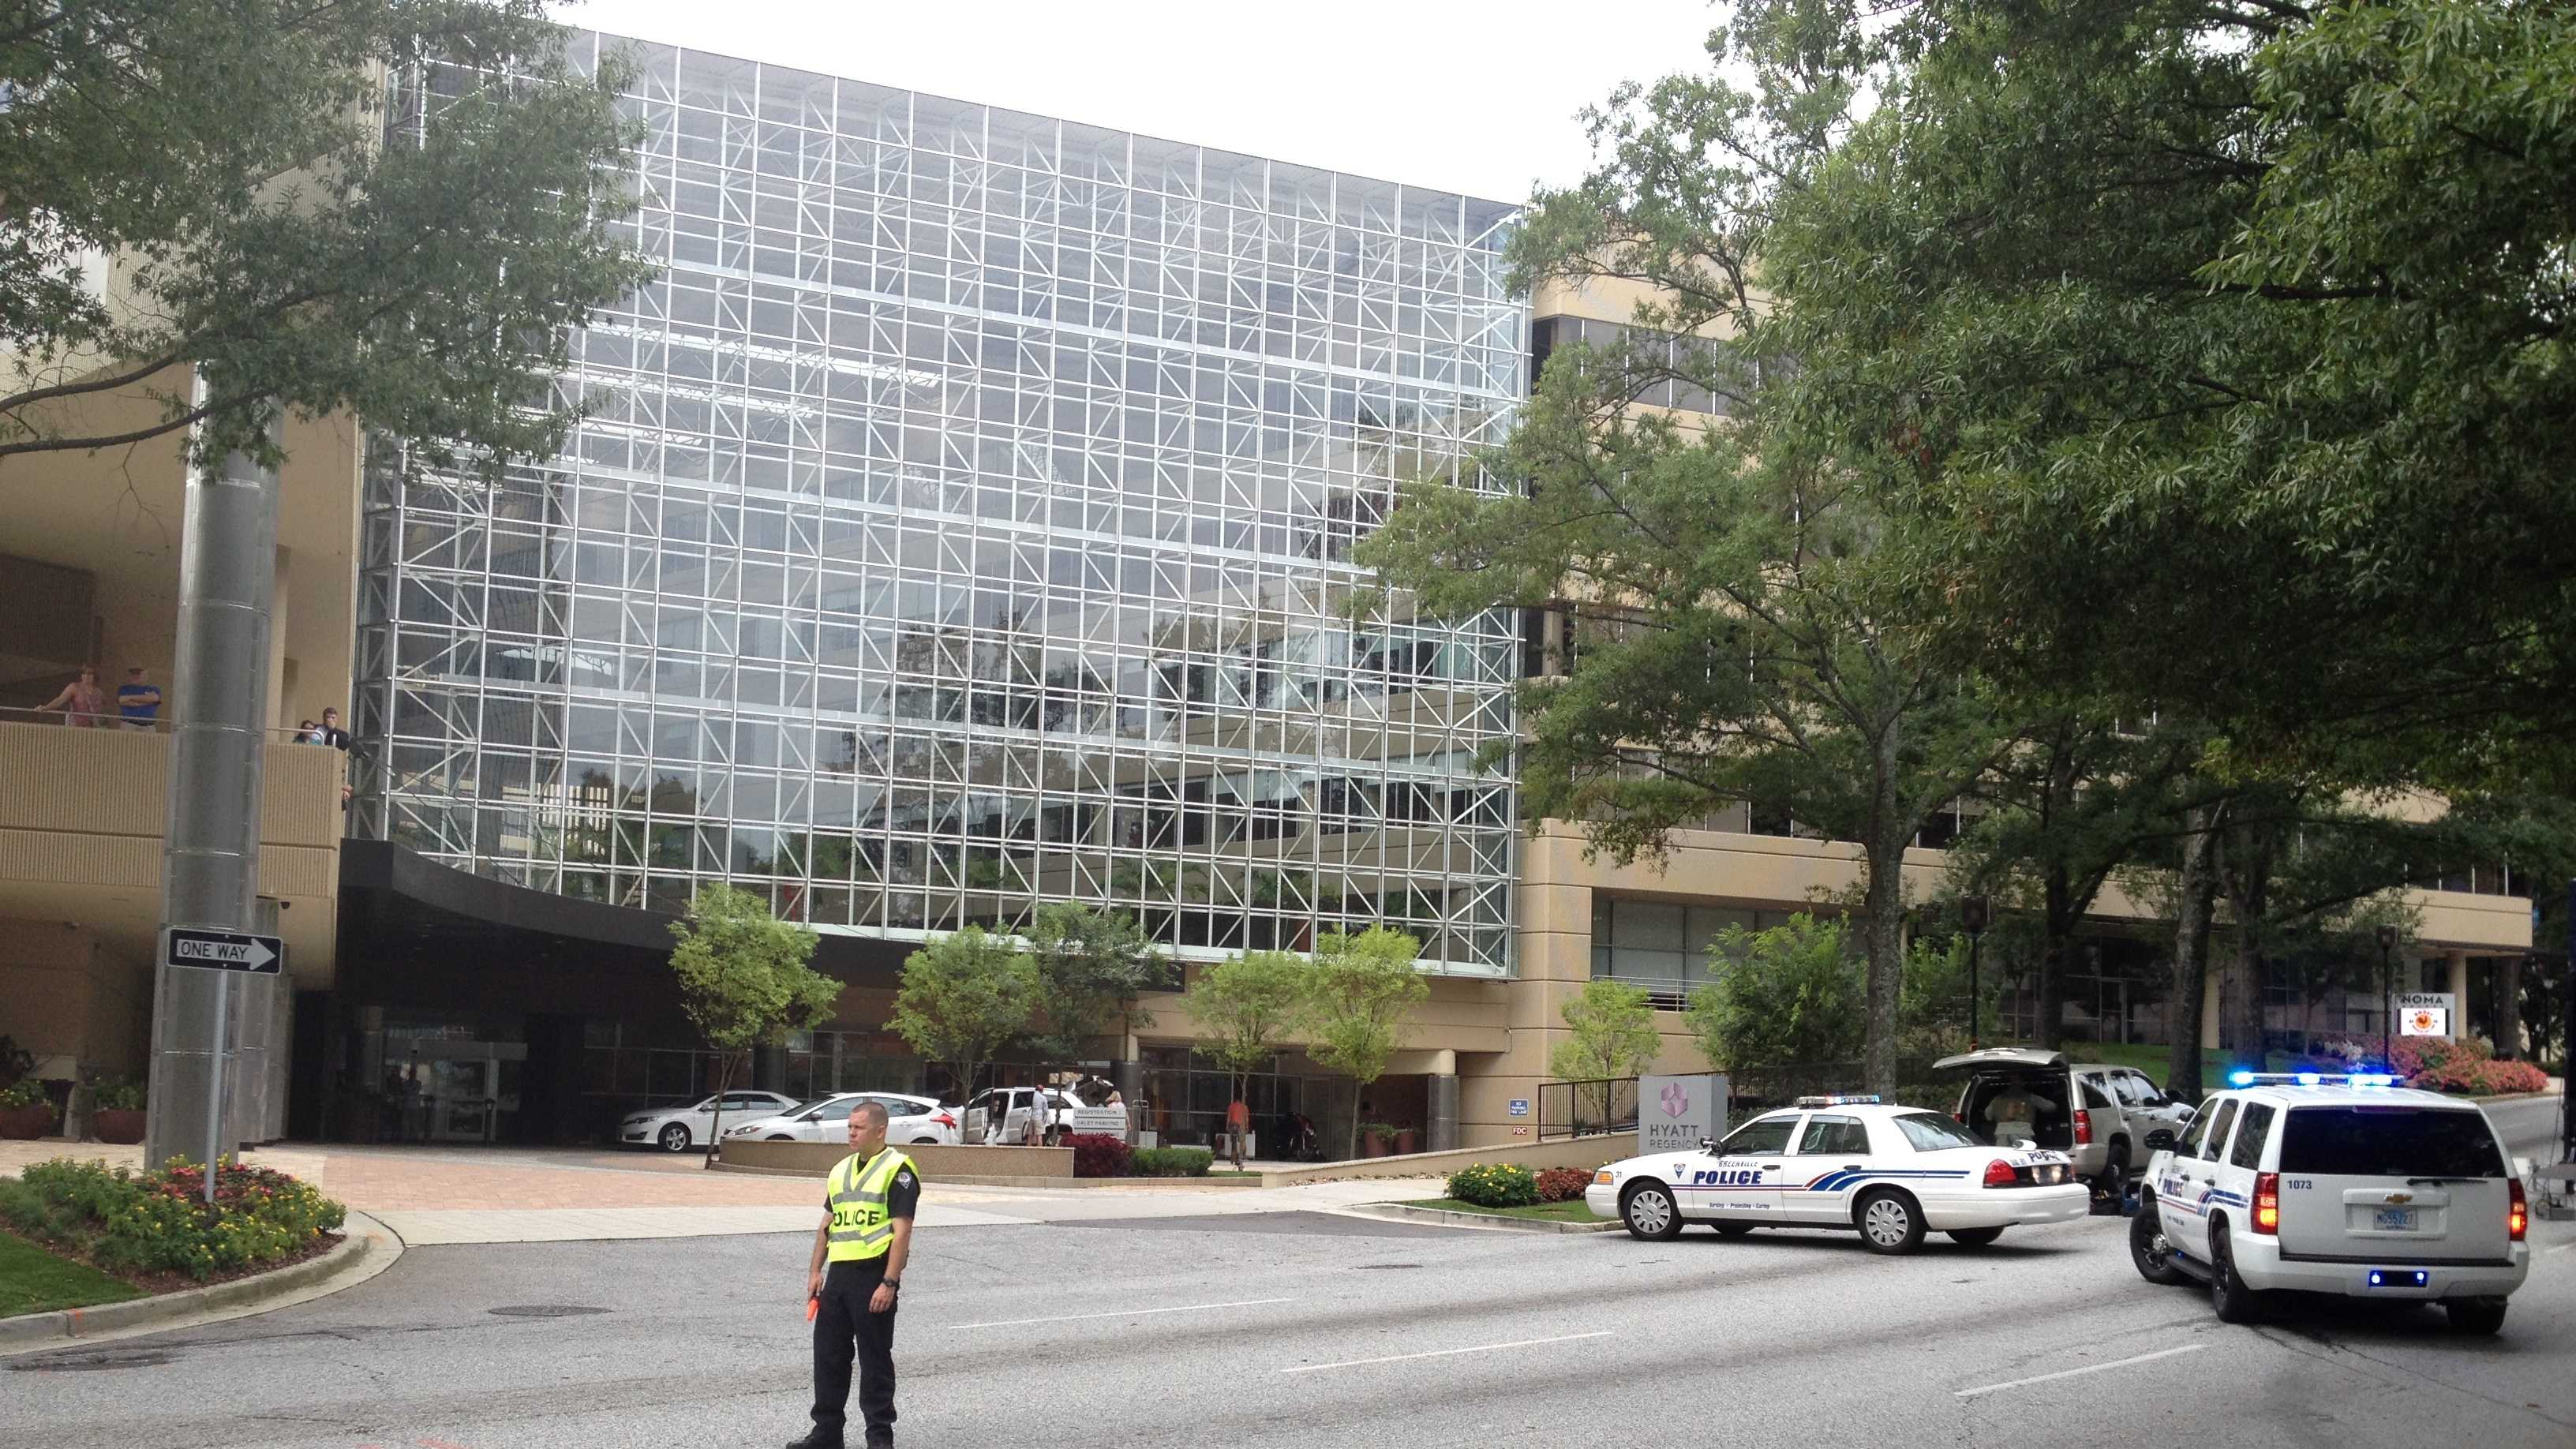 Authorities in Greenville are redirecting traffic in part of downtown Greenville.